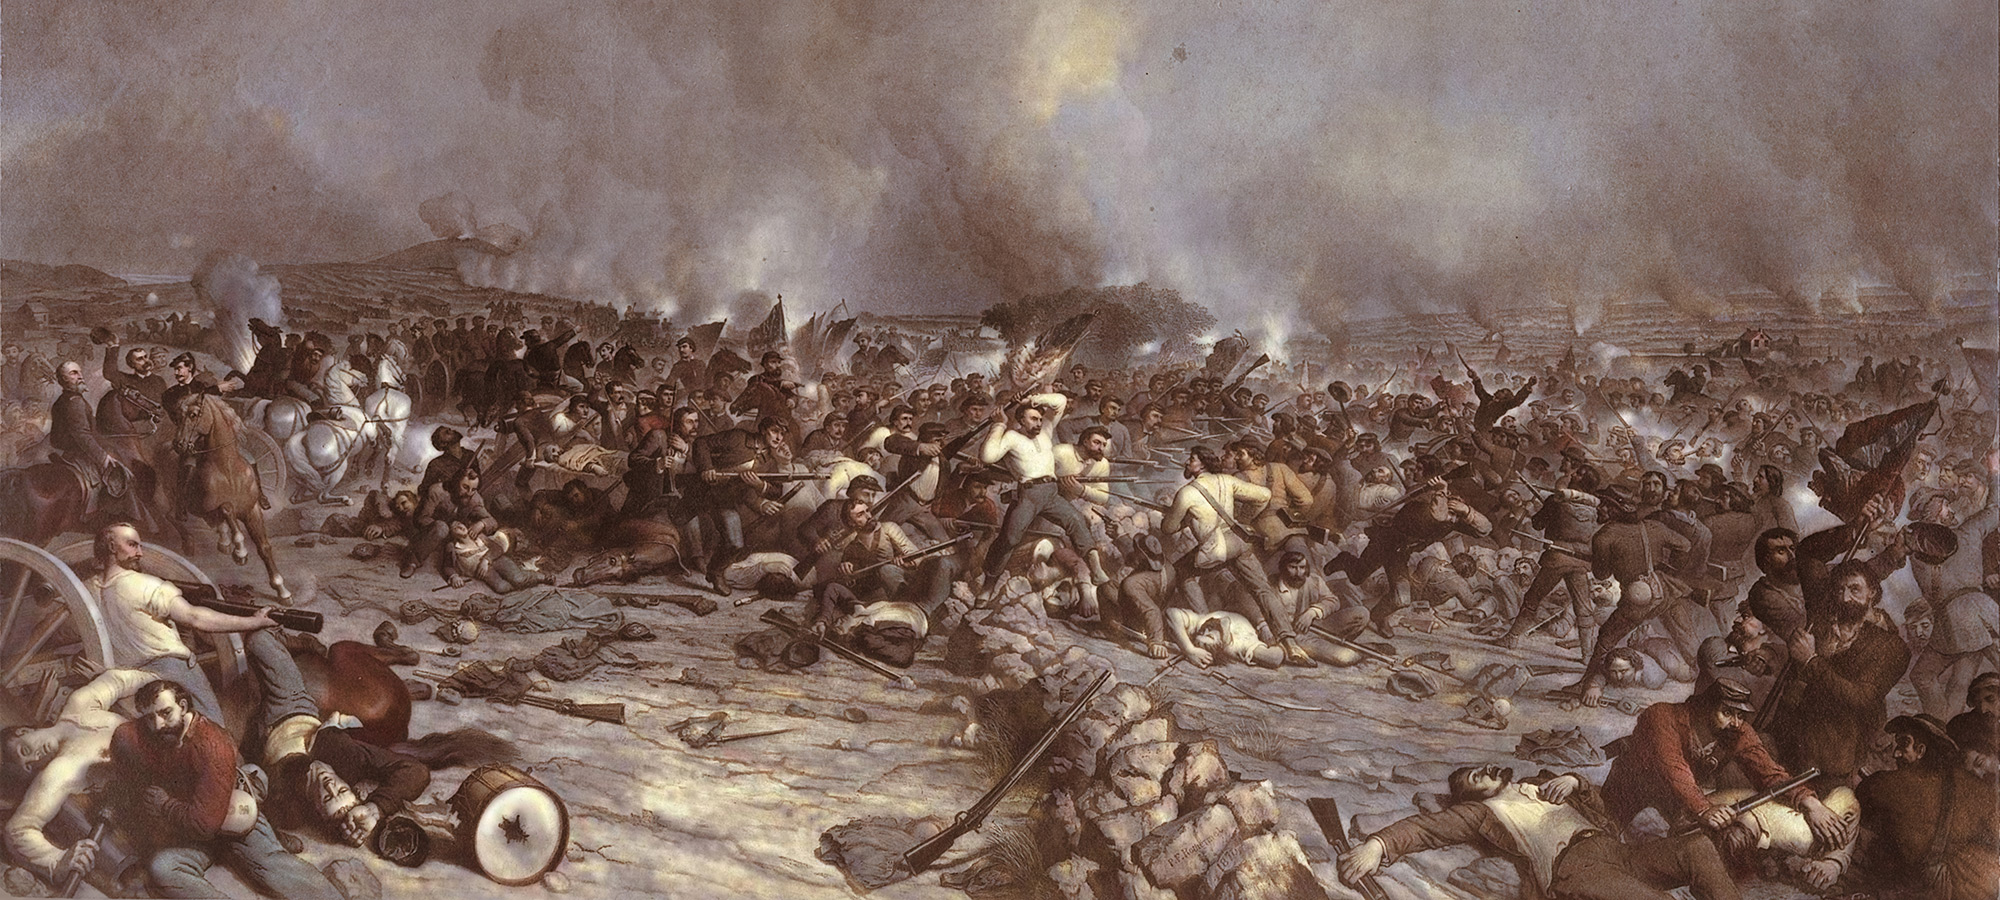 Battle of Gettysburg: Pickett's Charge  by Peter Frederick Rothermel. From the Pennsylvania Historical and Museum Commission/State Museum of Pennsylvania.